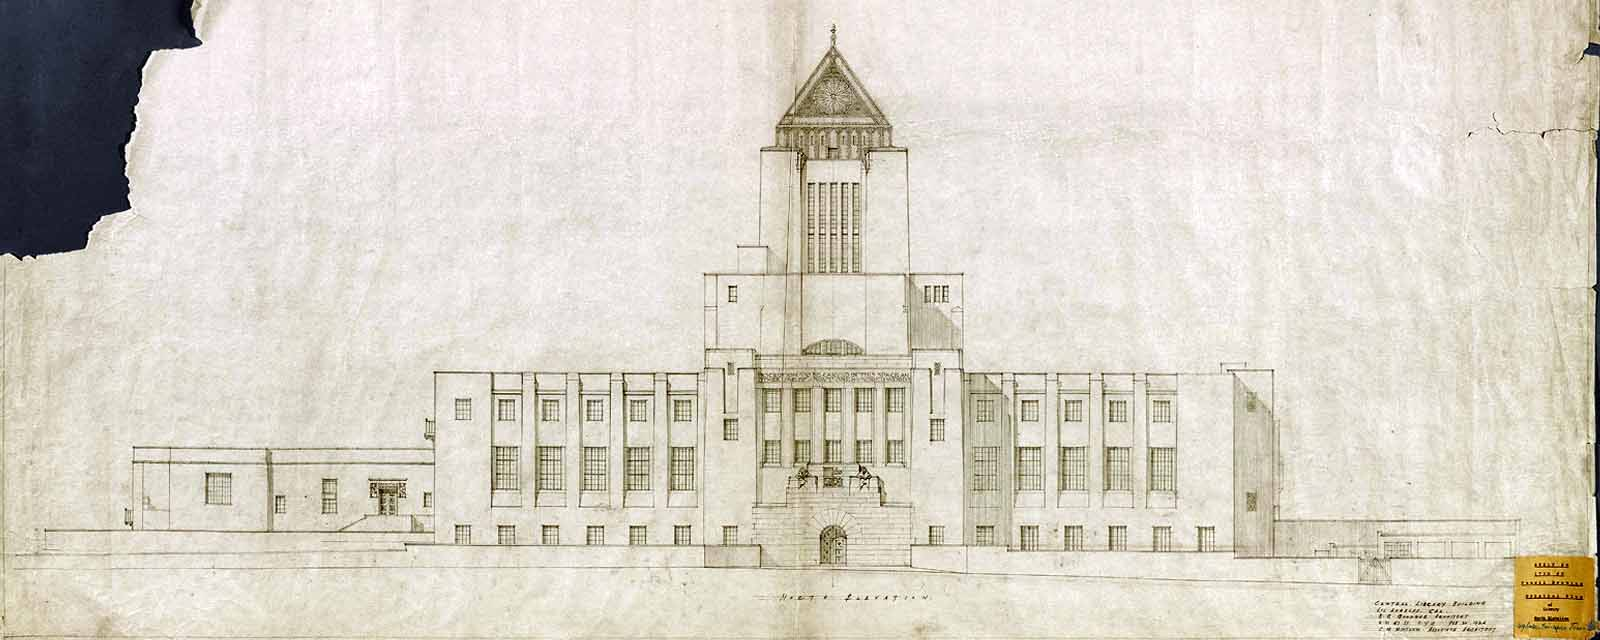 Plans of the Los Angeles Central Library